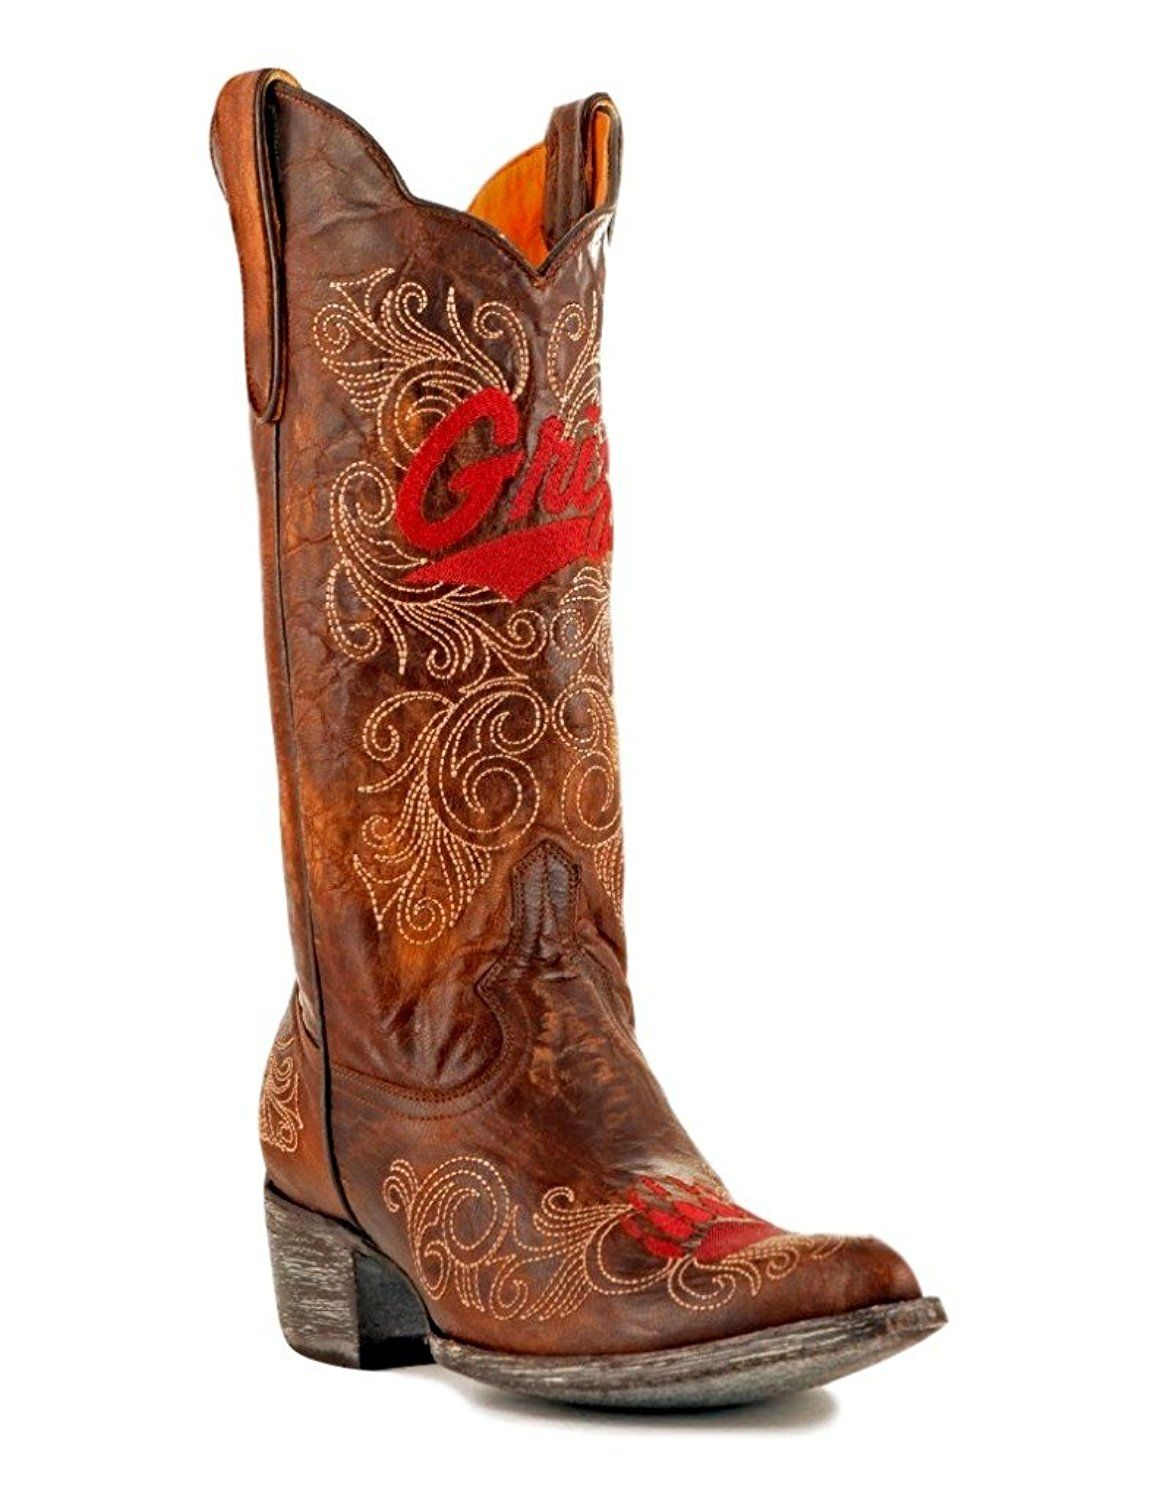 ebce0ee5740 Gameday Women's 13' Tall Leather Montana Cowboy Boots *** Quickly ...